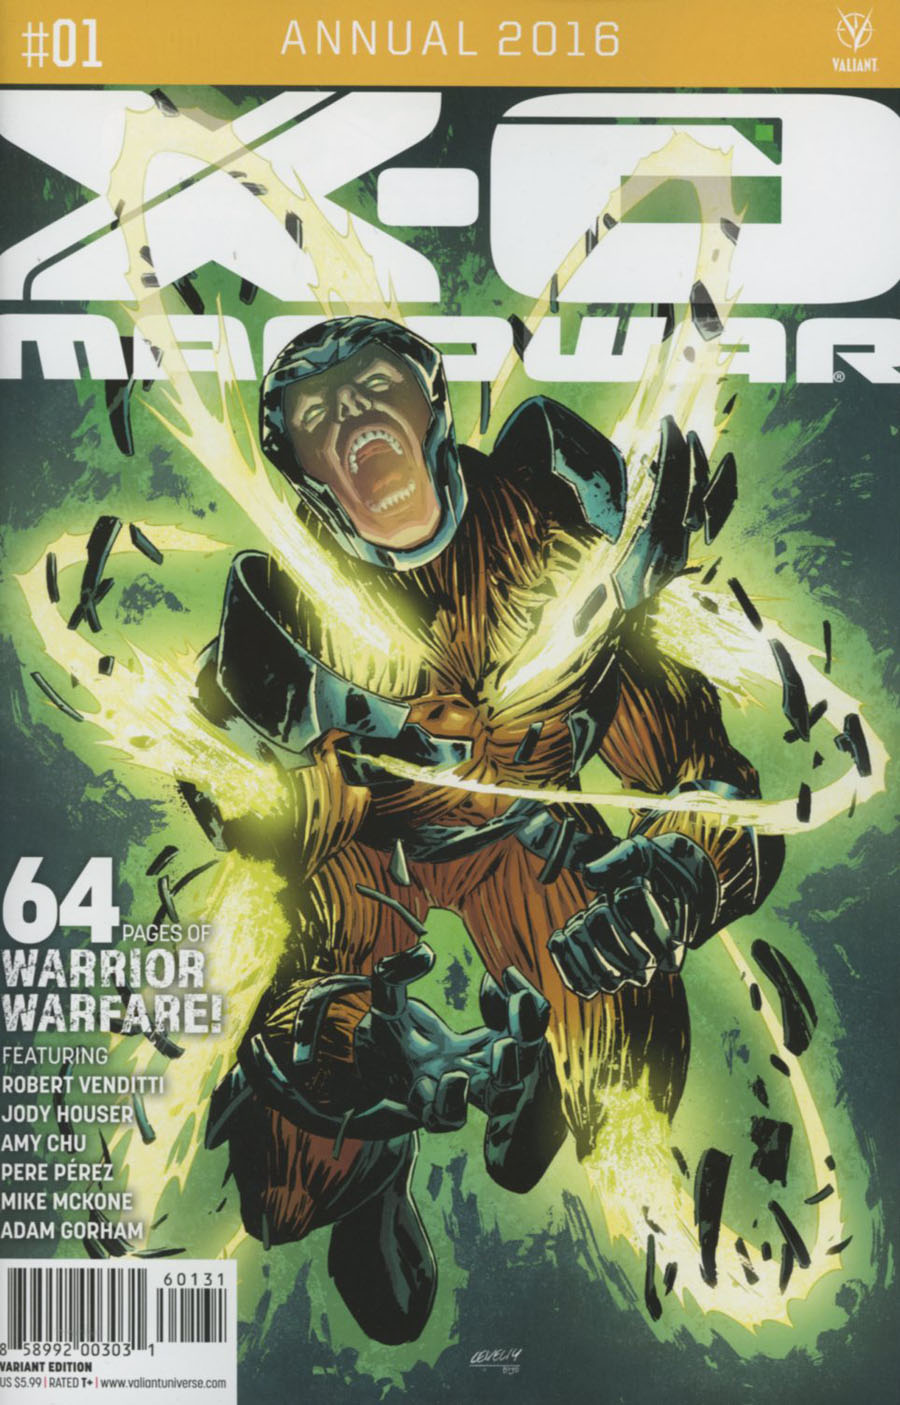 X-O Manowar Vol 3 Annual 2016 #1 Cover C Incentive Brian Level Variant Cover